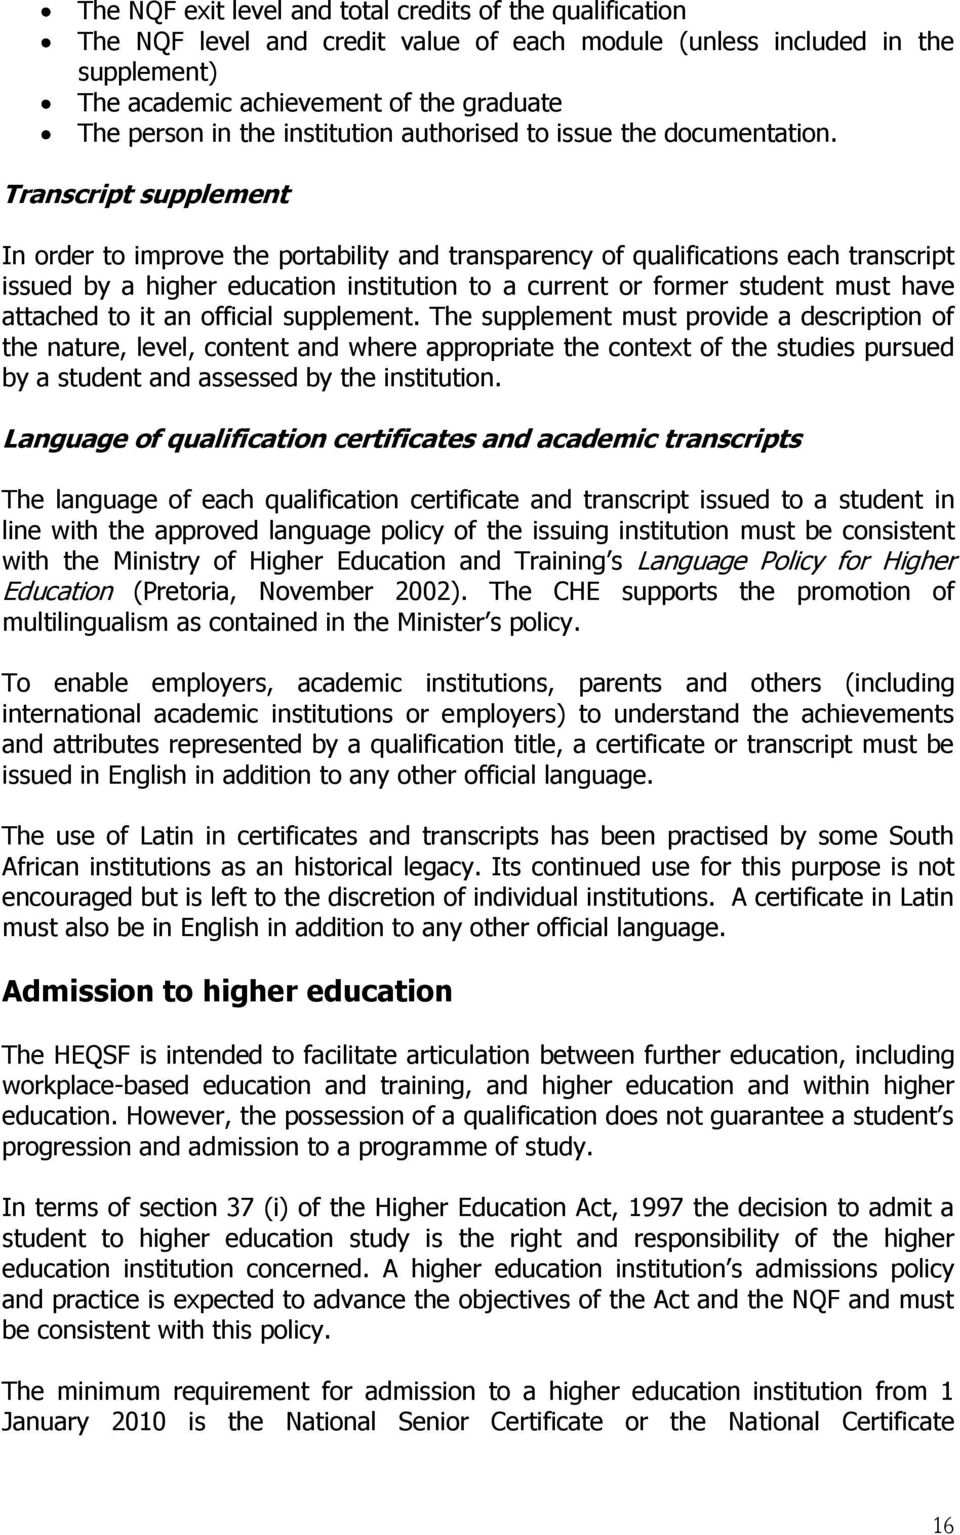 Transcript supplement In order to improve the portability and transparency of qualifications each transcript issued by a higher education institution to a current or former student must have attached